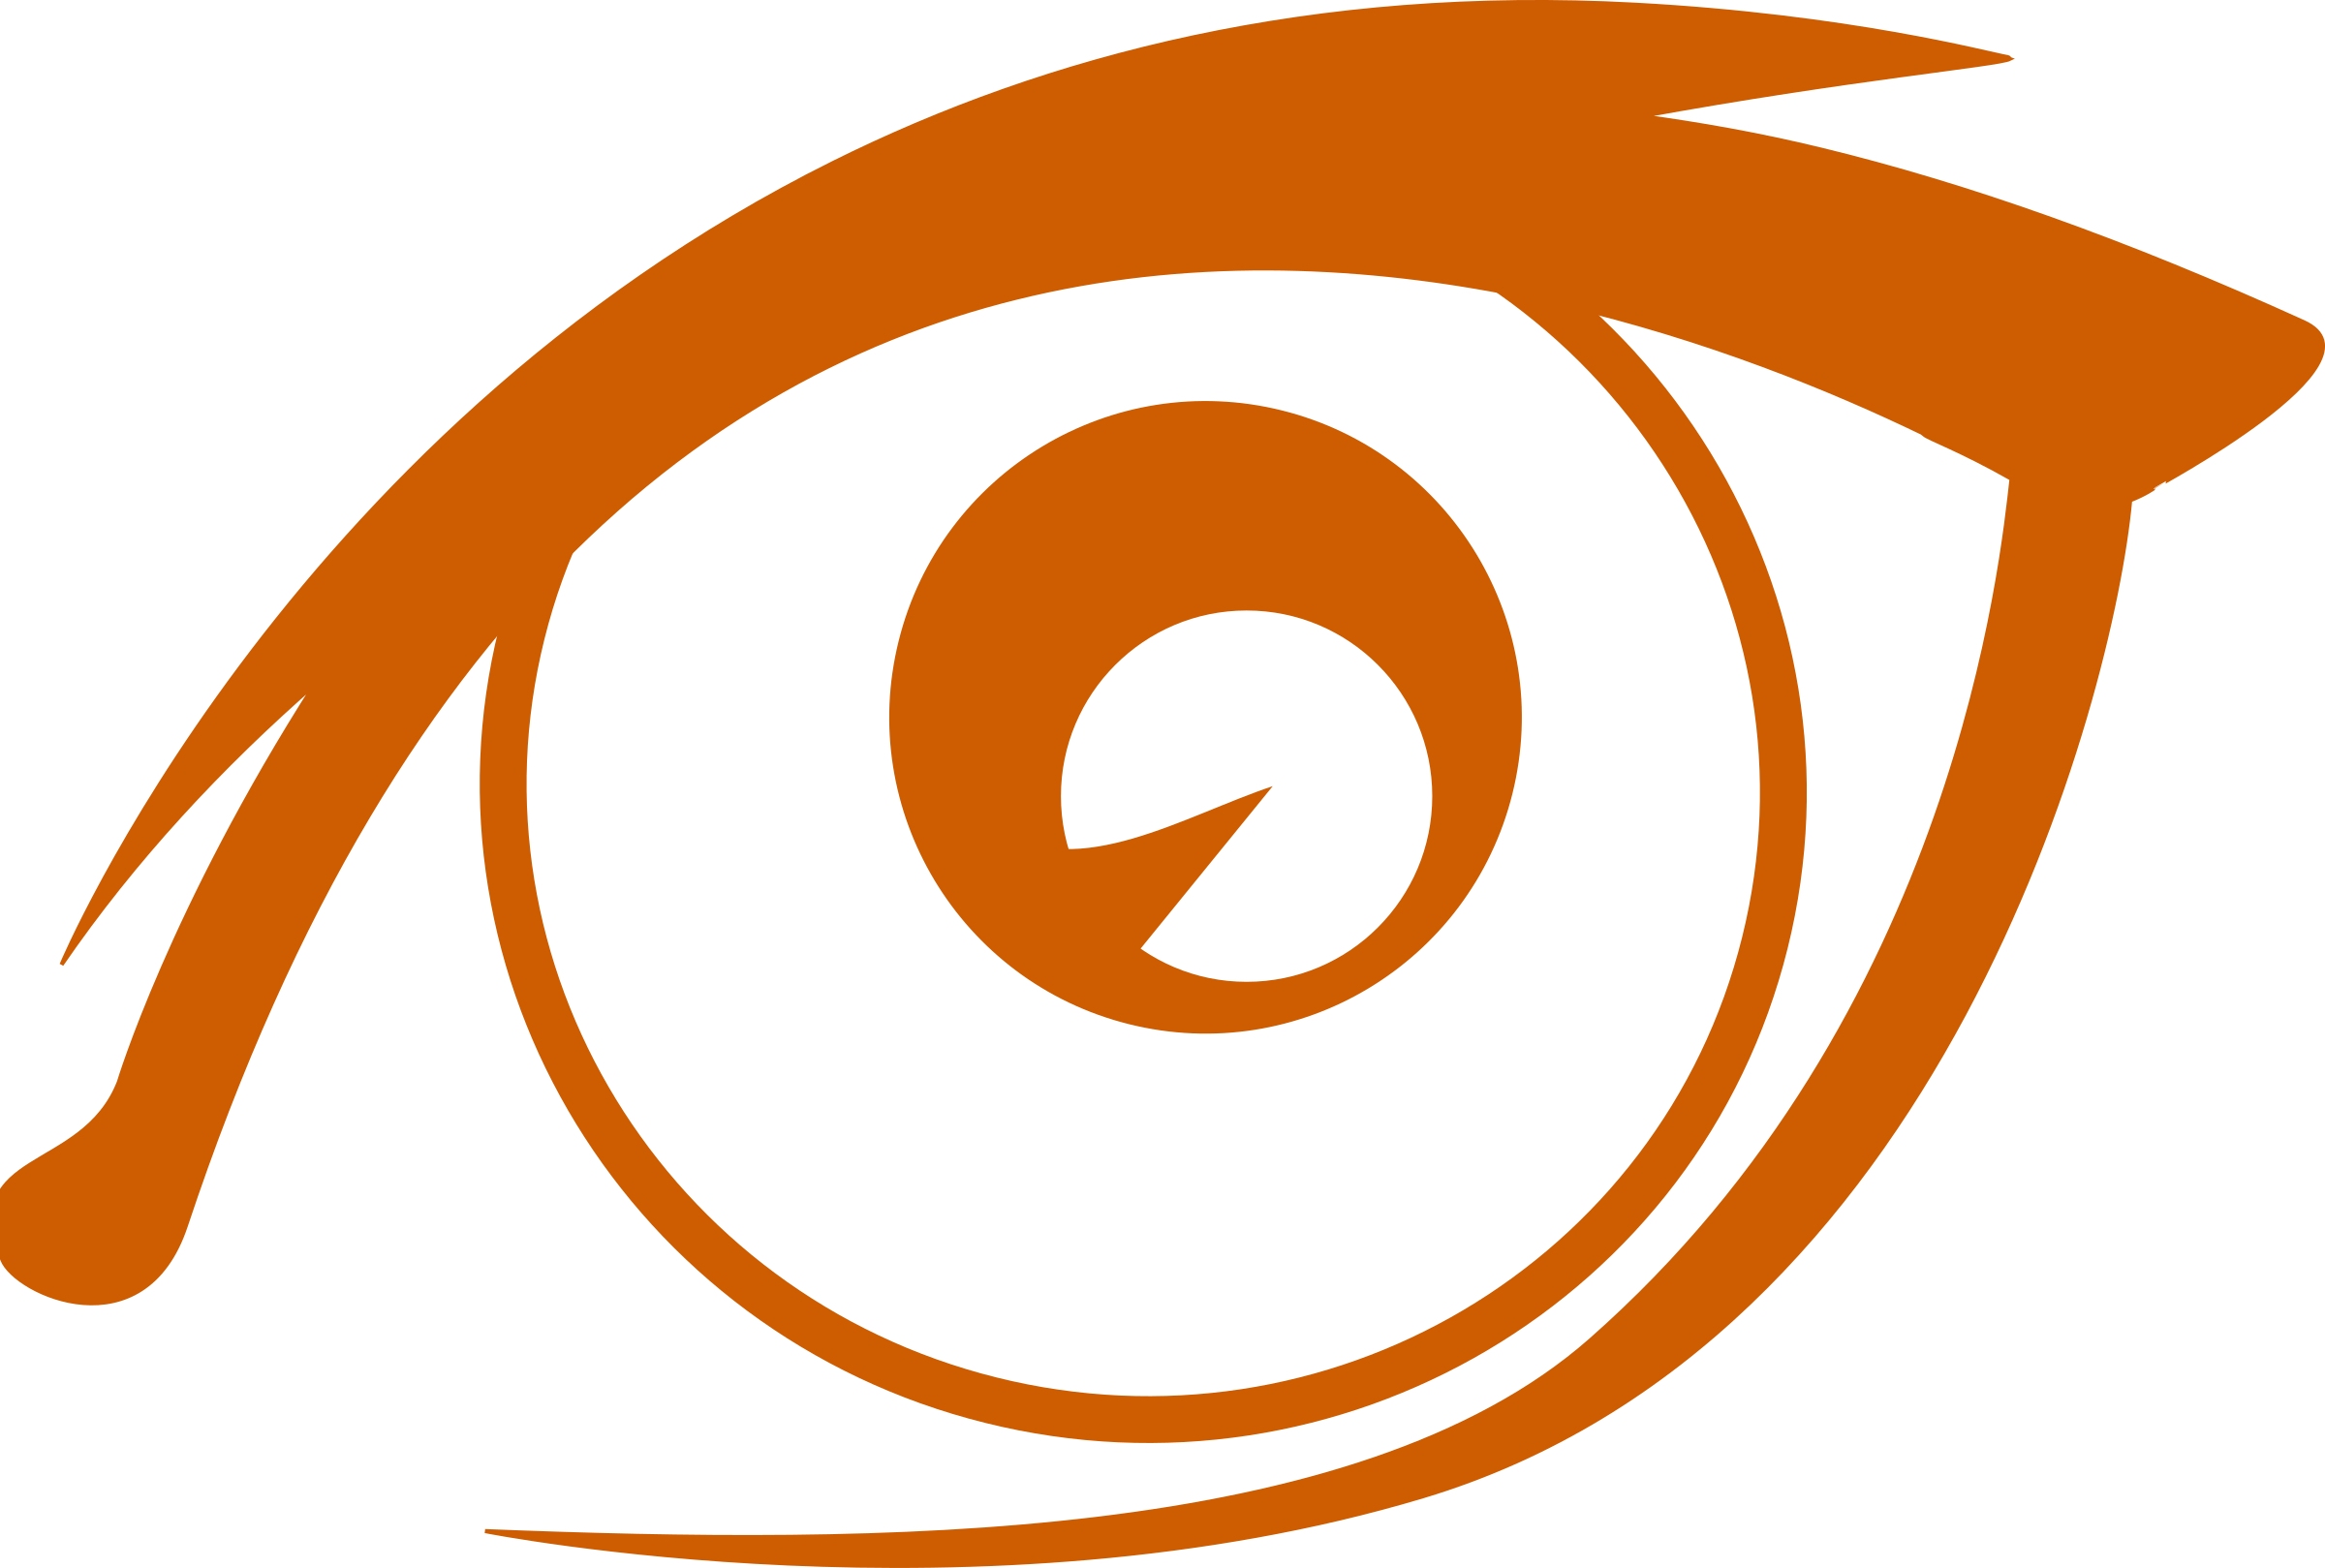 Clipart eye orange. Simple big image png